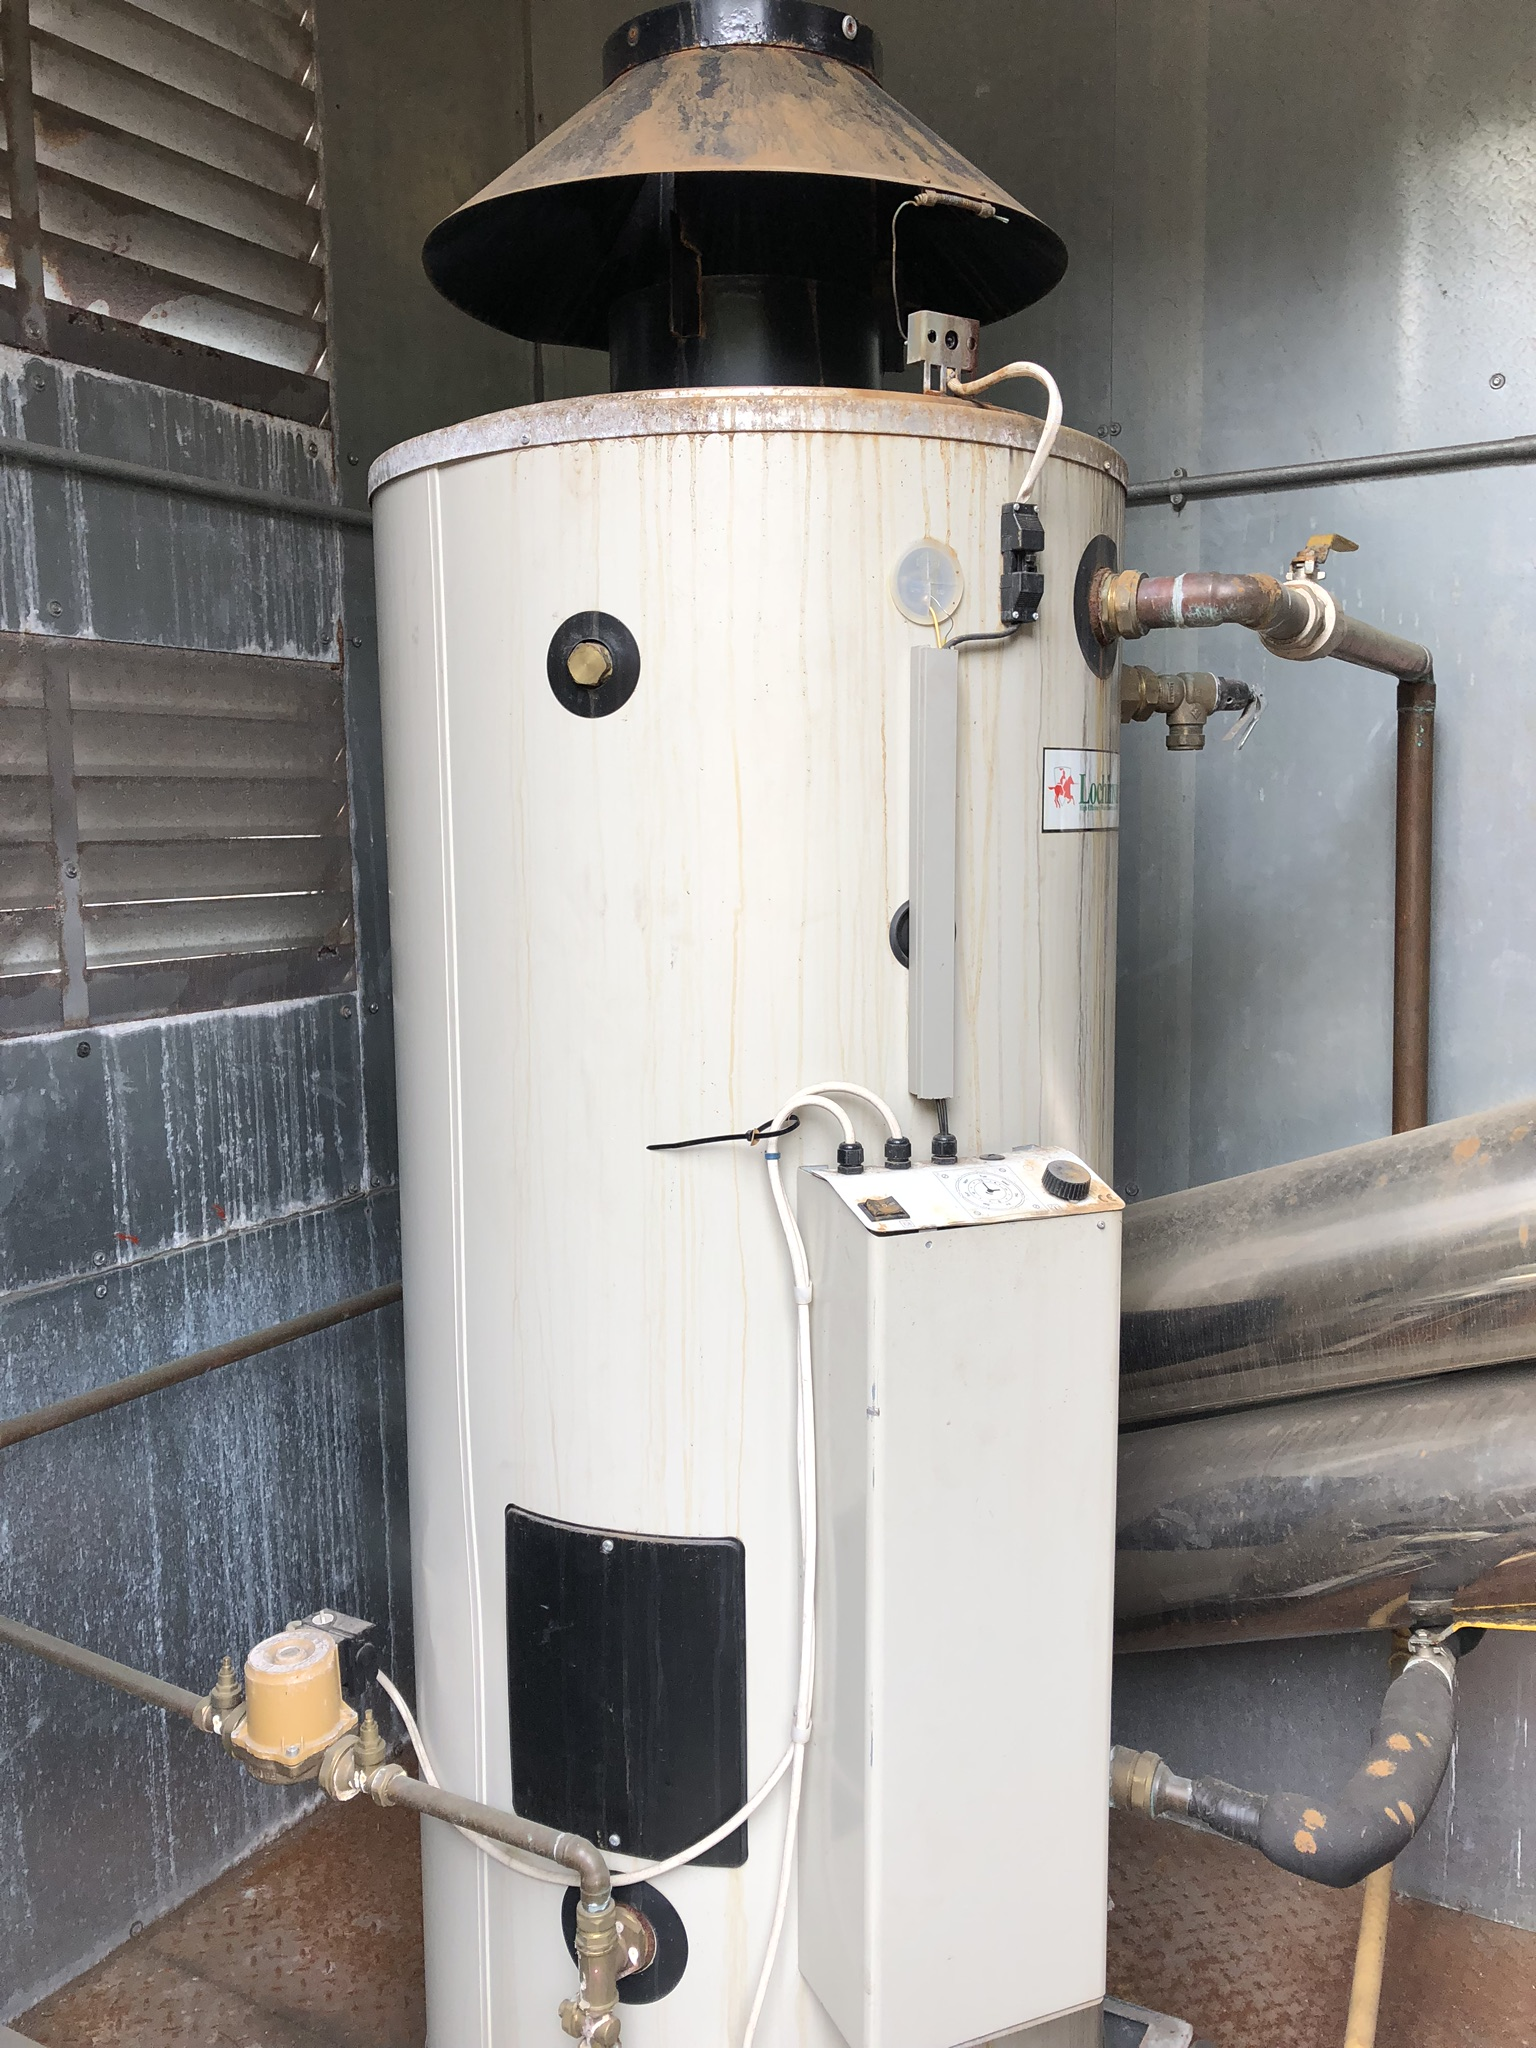 Two Lochnivar Gas Water Heaters, in container, with chimneys, lift out charge - £100